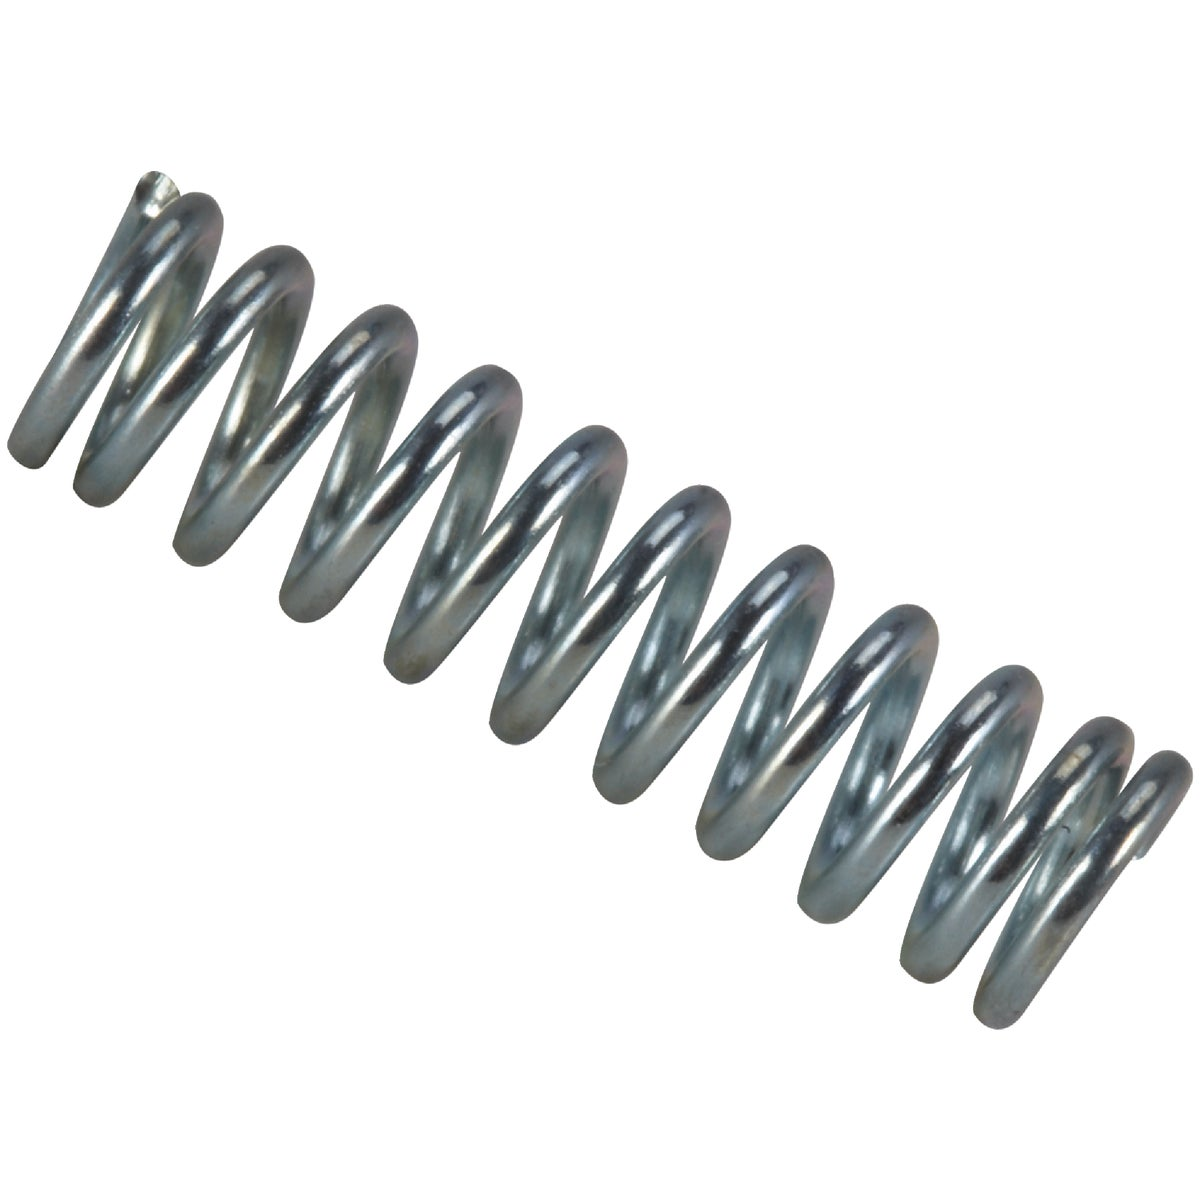 COMPRESSION SPRING - C-692 by Century Spring Corp